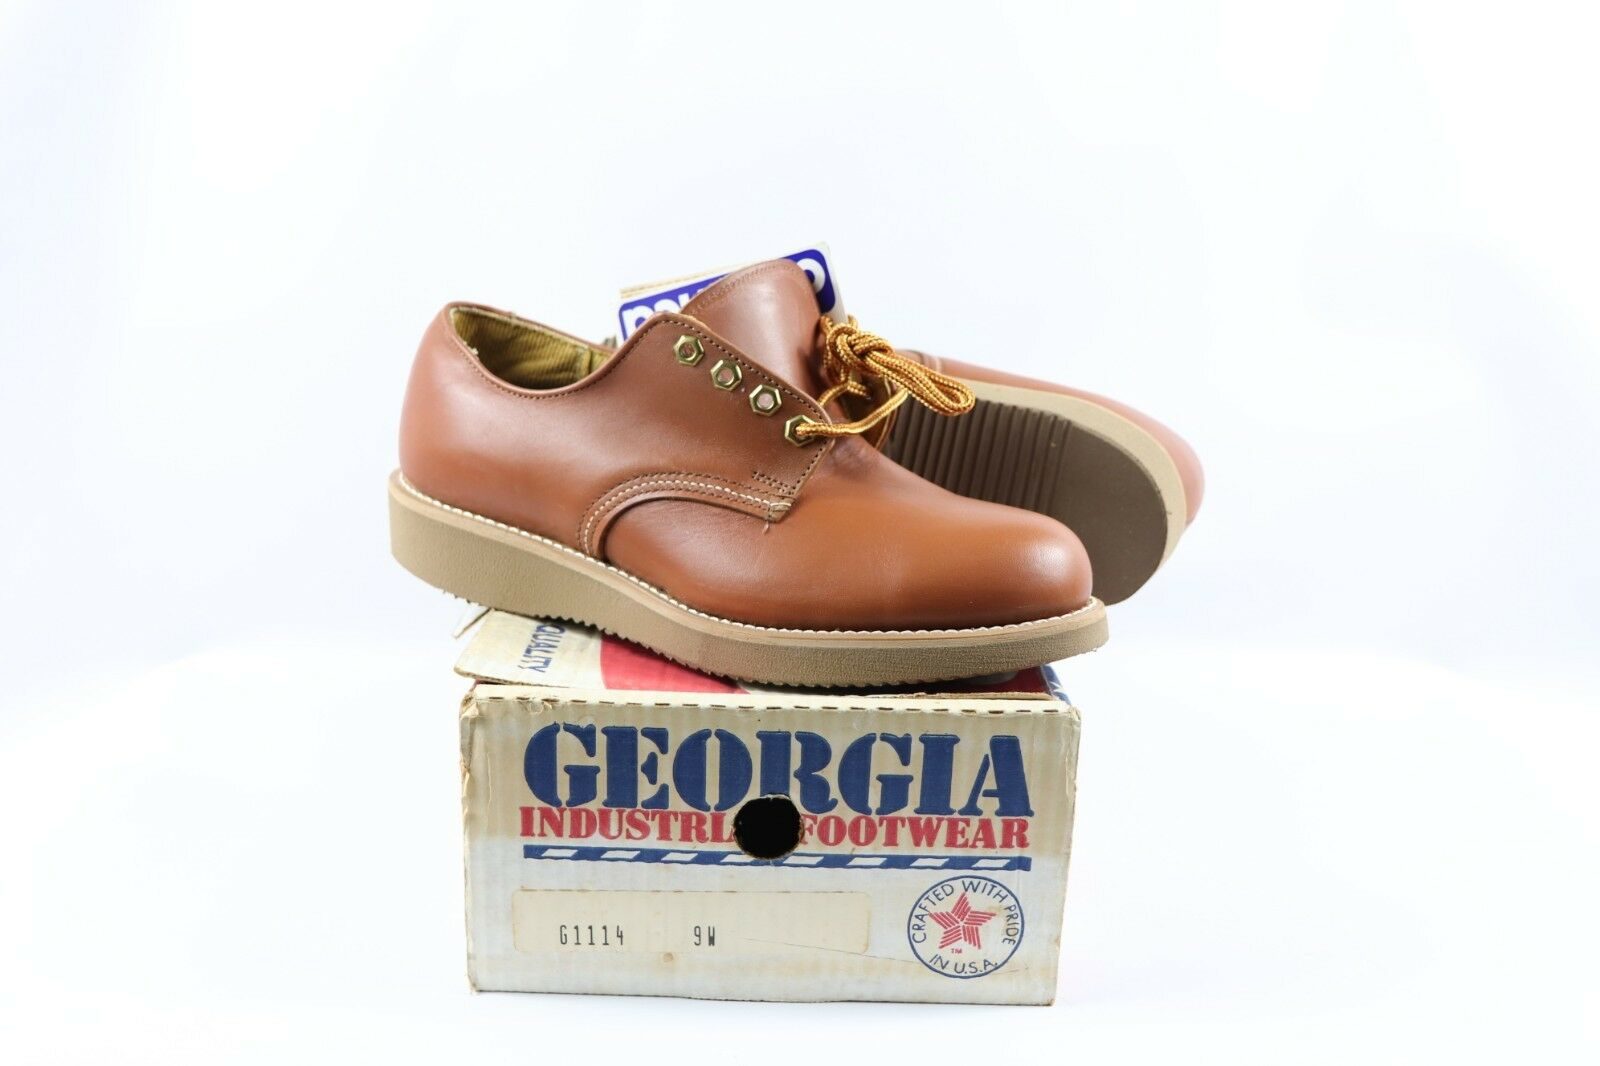 Vintage New Georgia Mens 9 W Steel Toe Cambrelle Leather Oxford Work shoes Brown